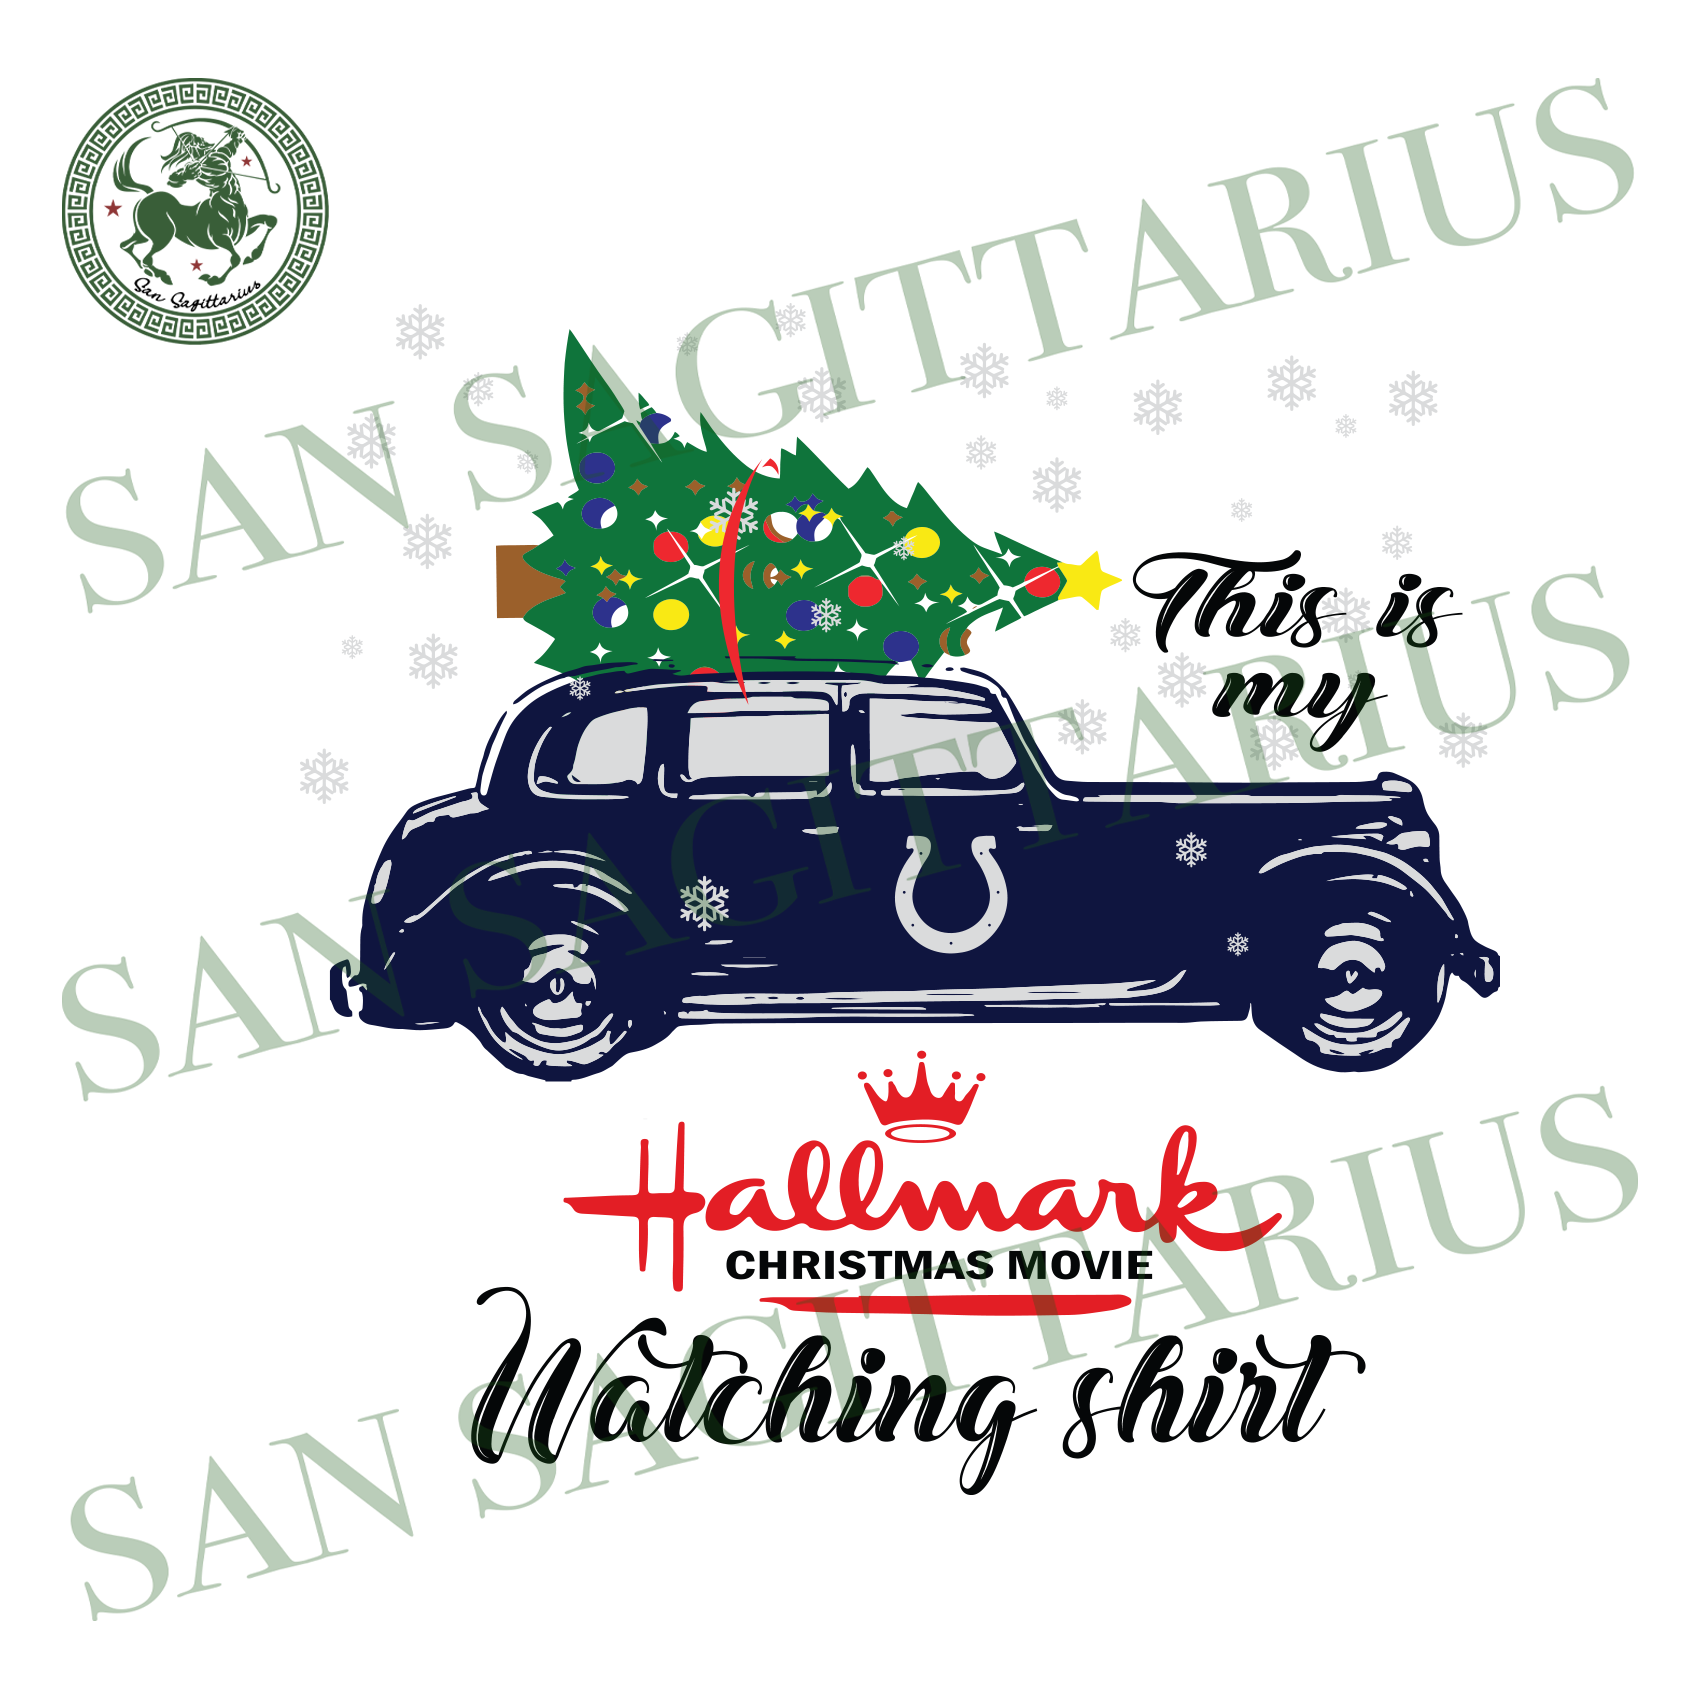 Indianapolis Colts This Is My Hallmark Christmas Movie Watching Shirt, Sport Svg, Christmas Svg, Indianapolis Colts Svg, NFL Sport Svg, Indianapolis Colts NFL Svg, Indianapolis Colts NFL Gift